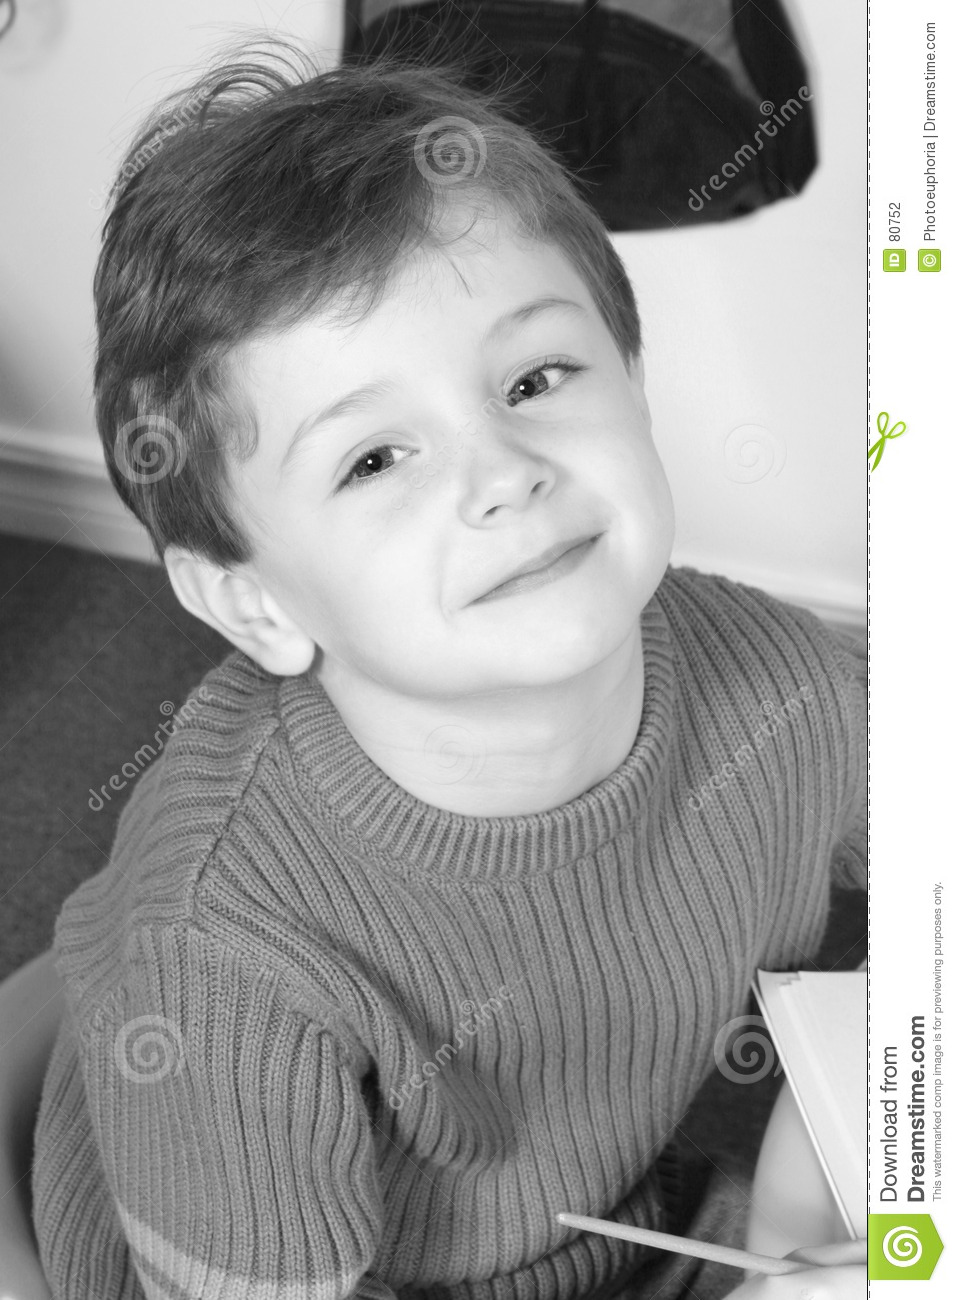 Adorable Four Year Old Boy With Big Blue Eyes Stock Photo Image Of